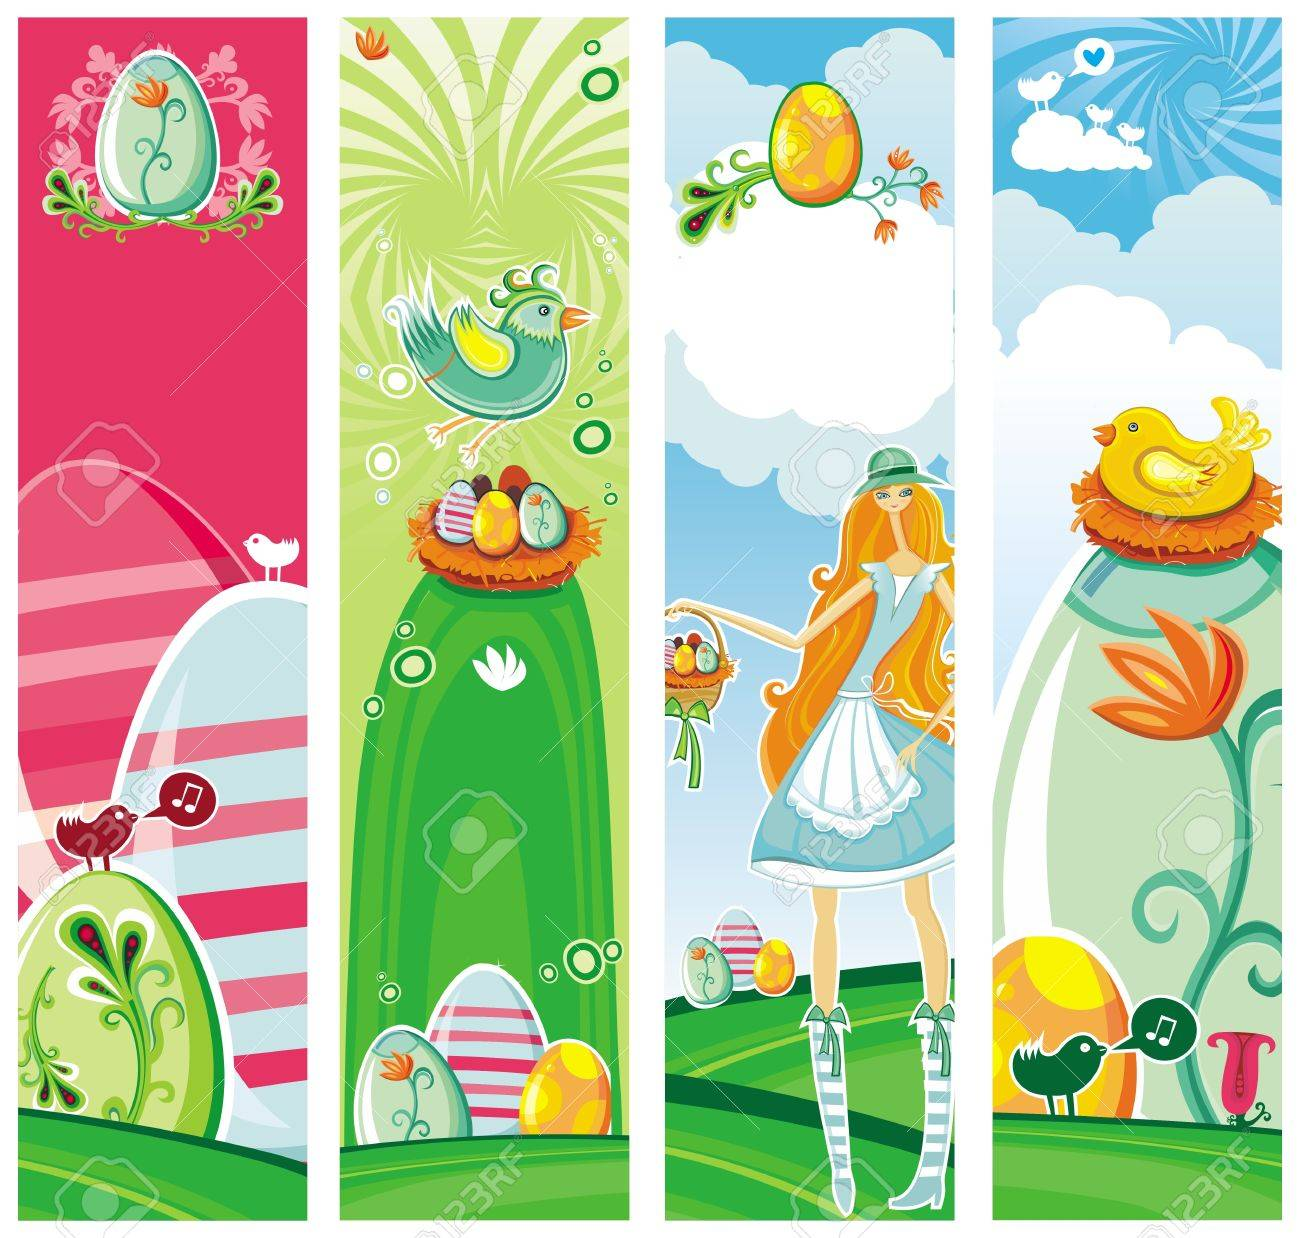 1 228 passover background stock vector illustration and royalty